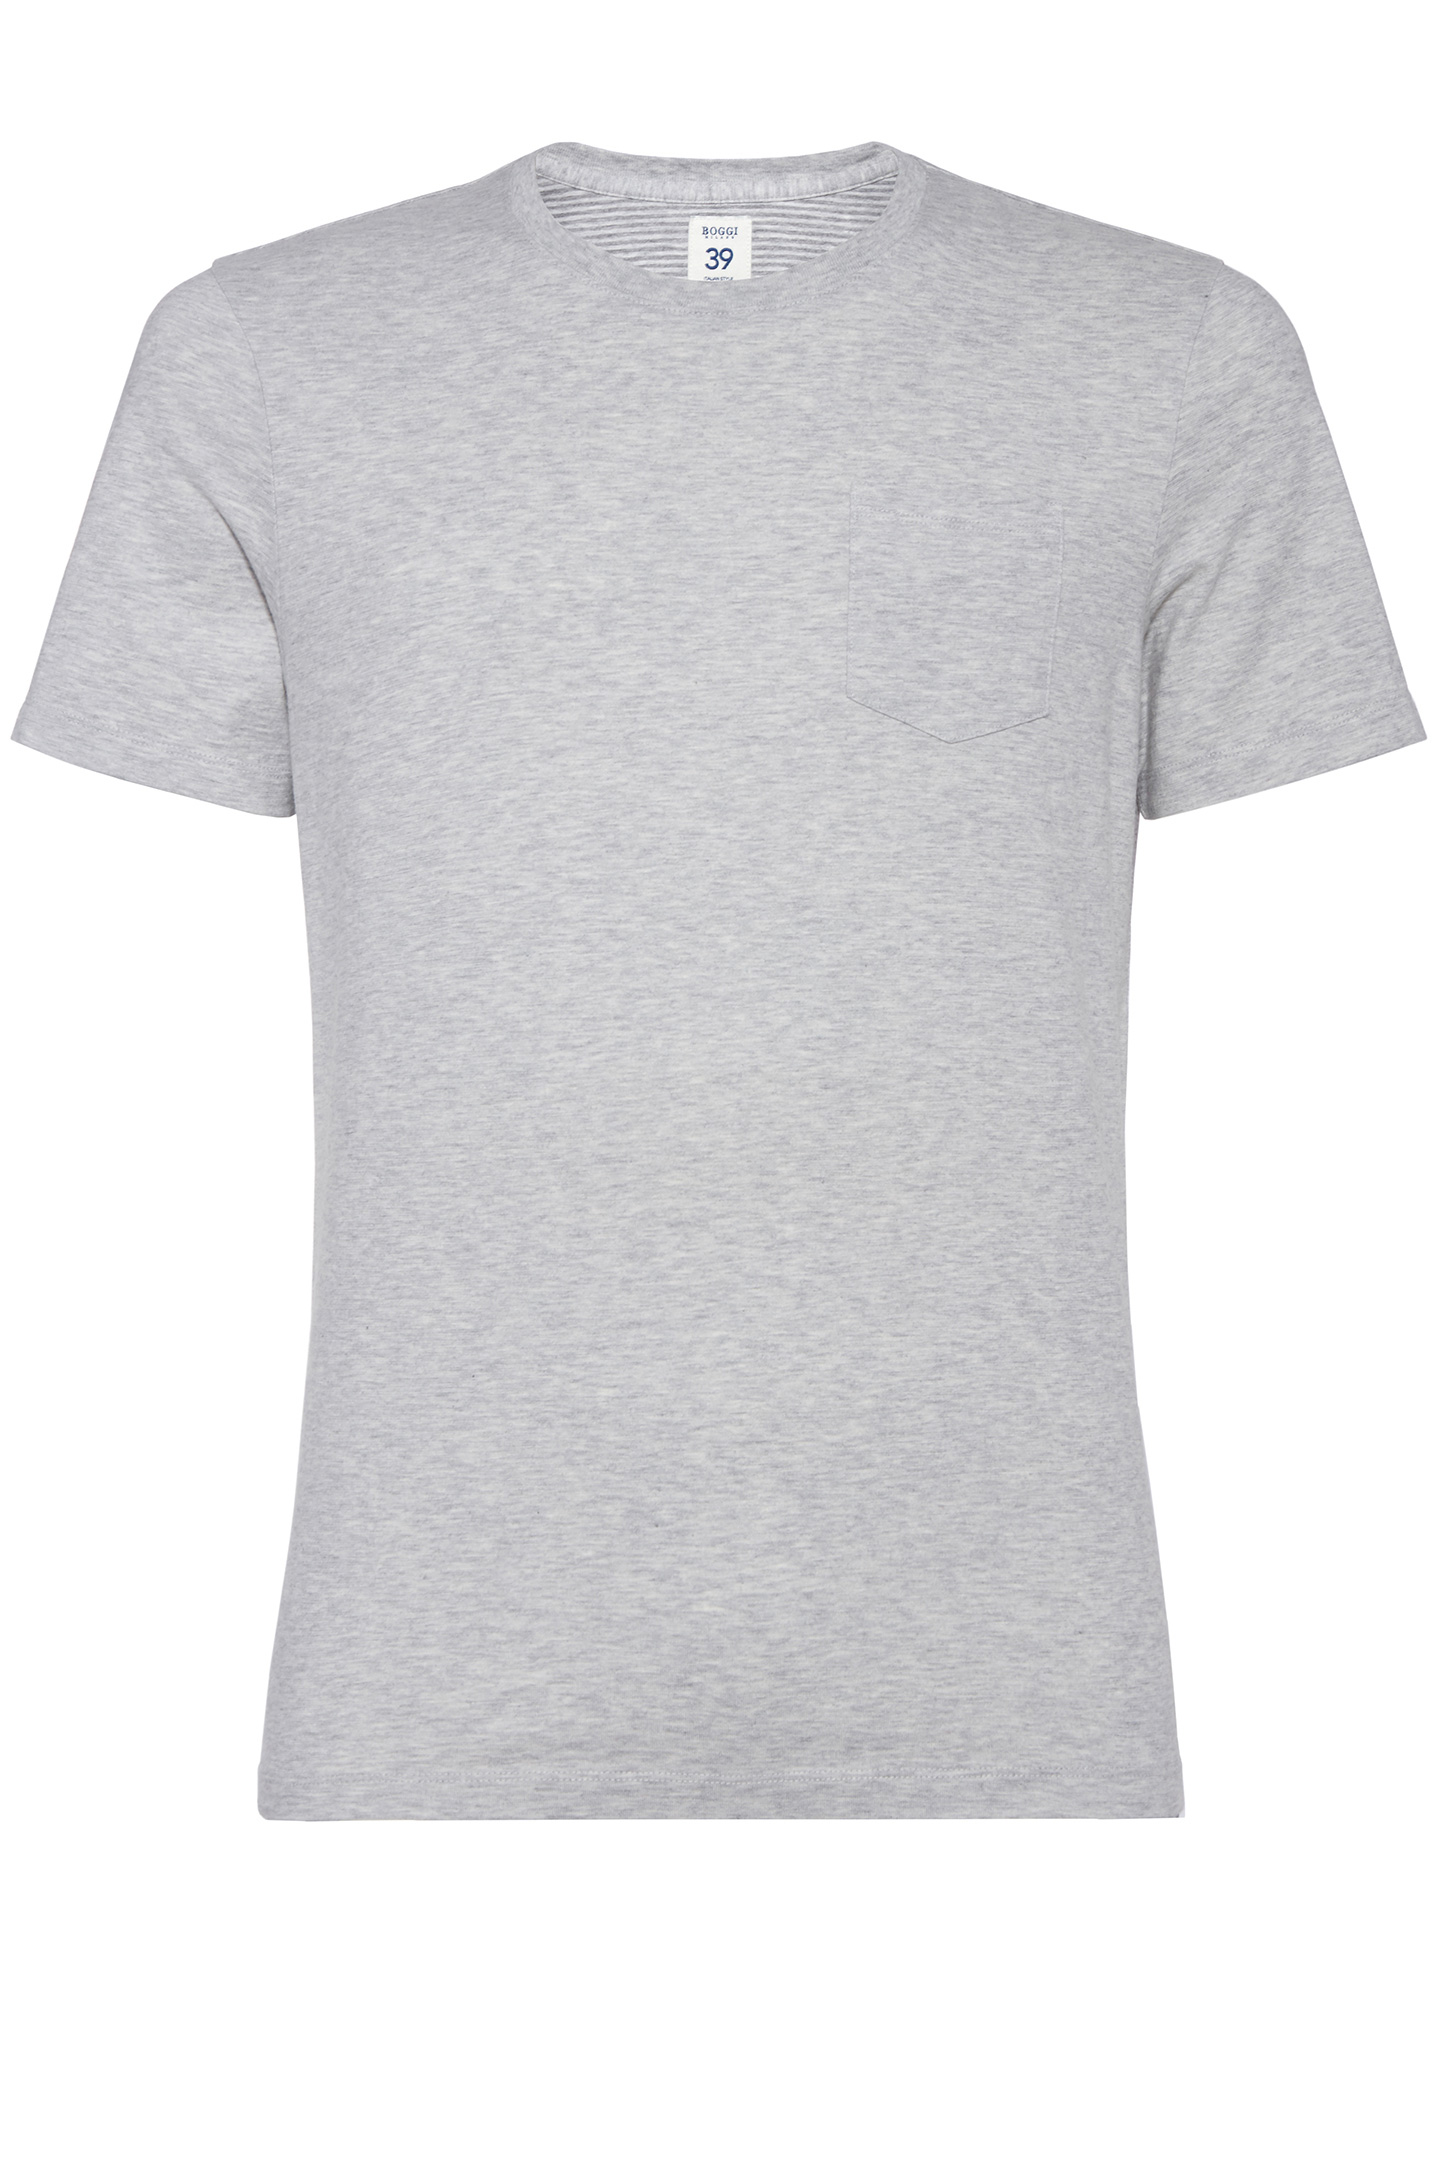 Custom fit basic plain cotton t shirt boggi for Custom cotton t shirts